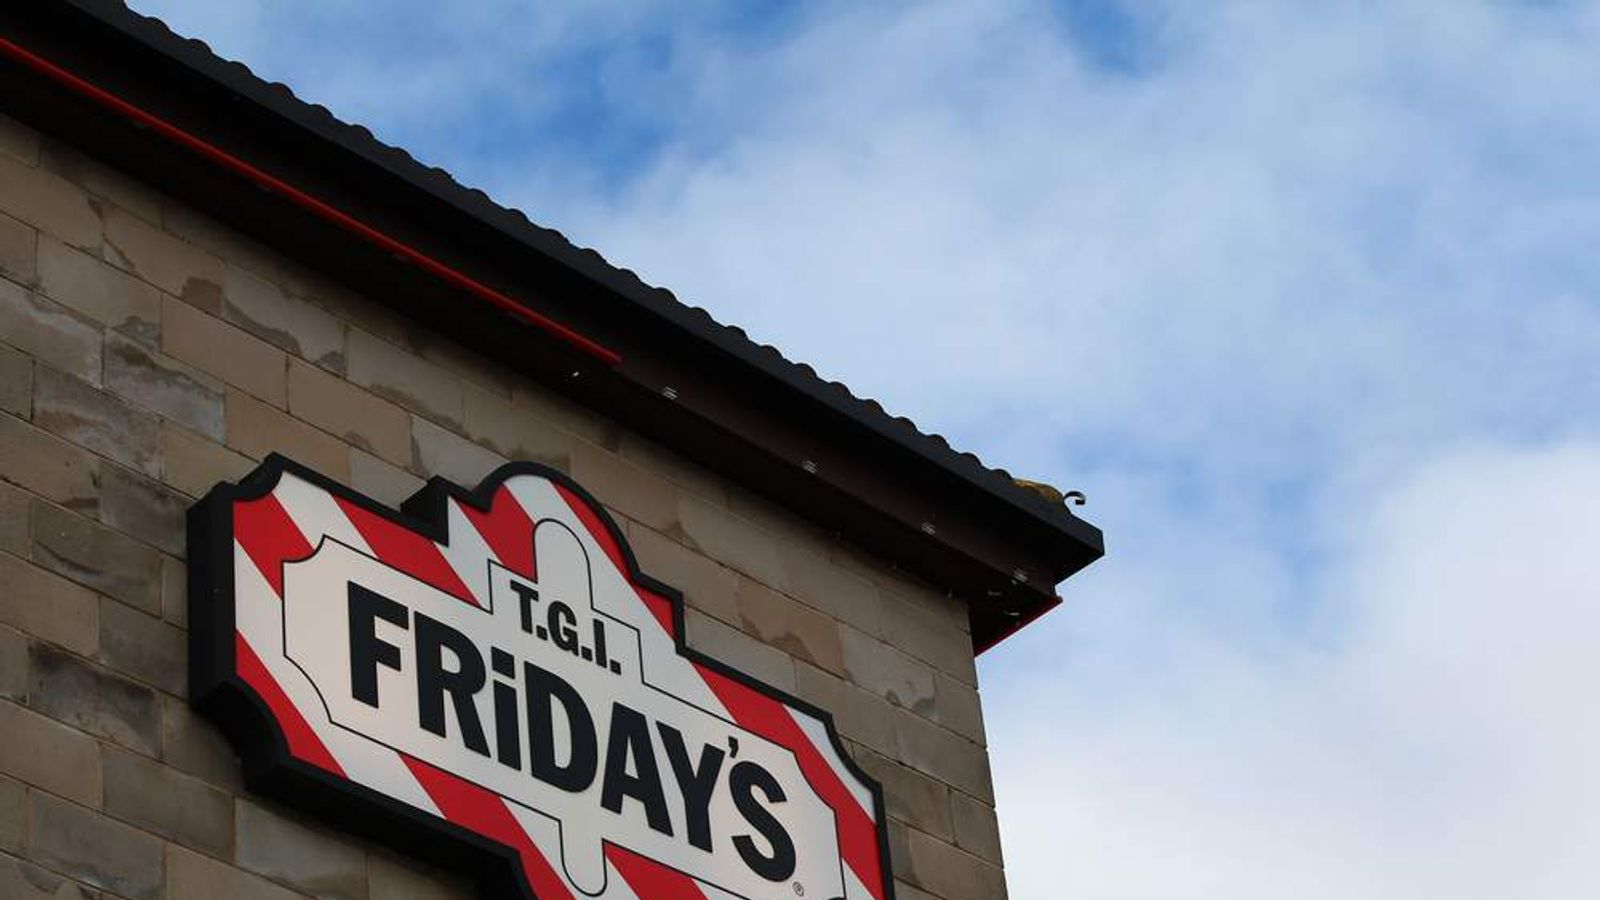 The owner of the TGI Fridays chain is considering strategic alternatives, including a possible sale of the restaurant chain.